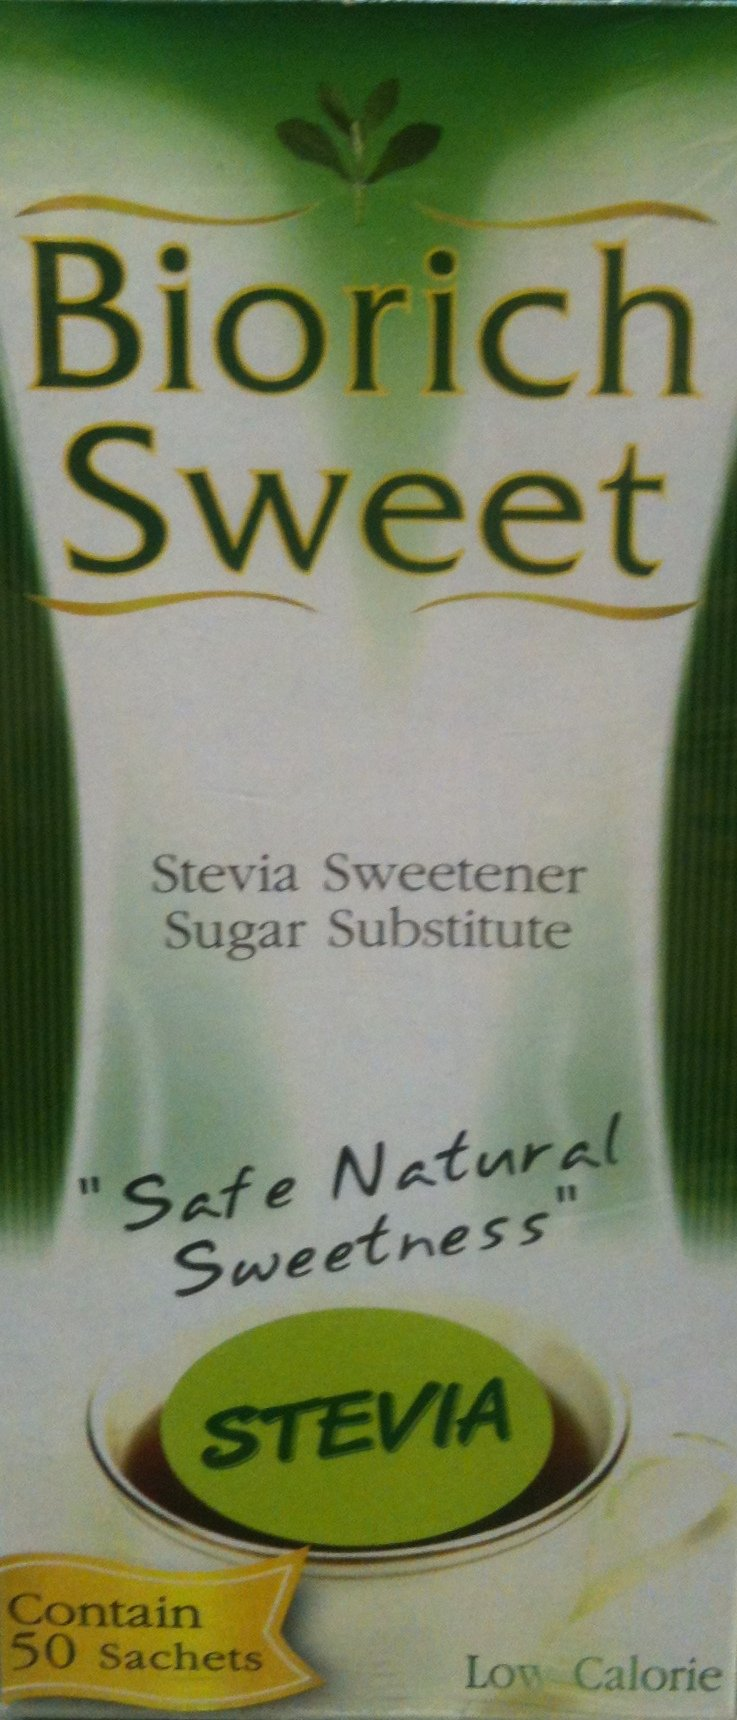 Biorich Sweet Stevia Sweetener Sugar Substitute50 Sachets l by ThaiShop4You